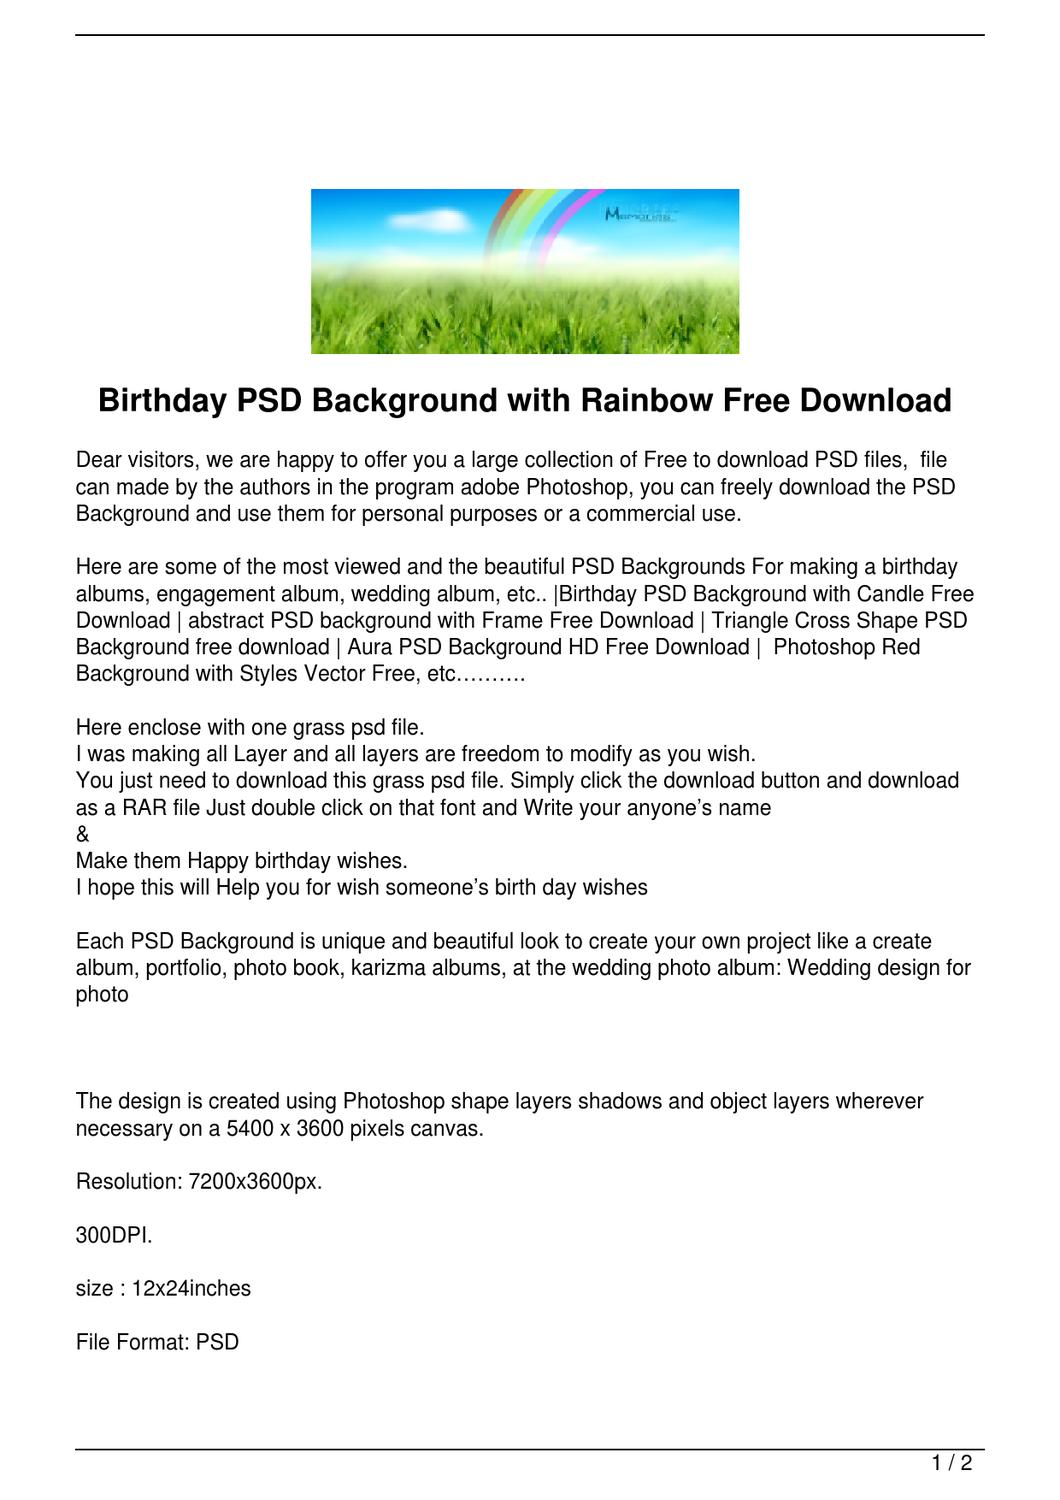 Birthday PSD Background with Rainbow Free Download by